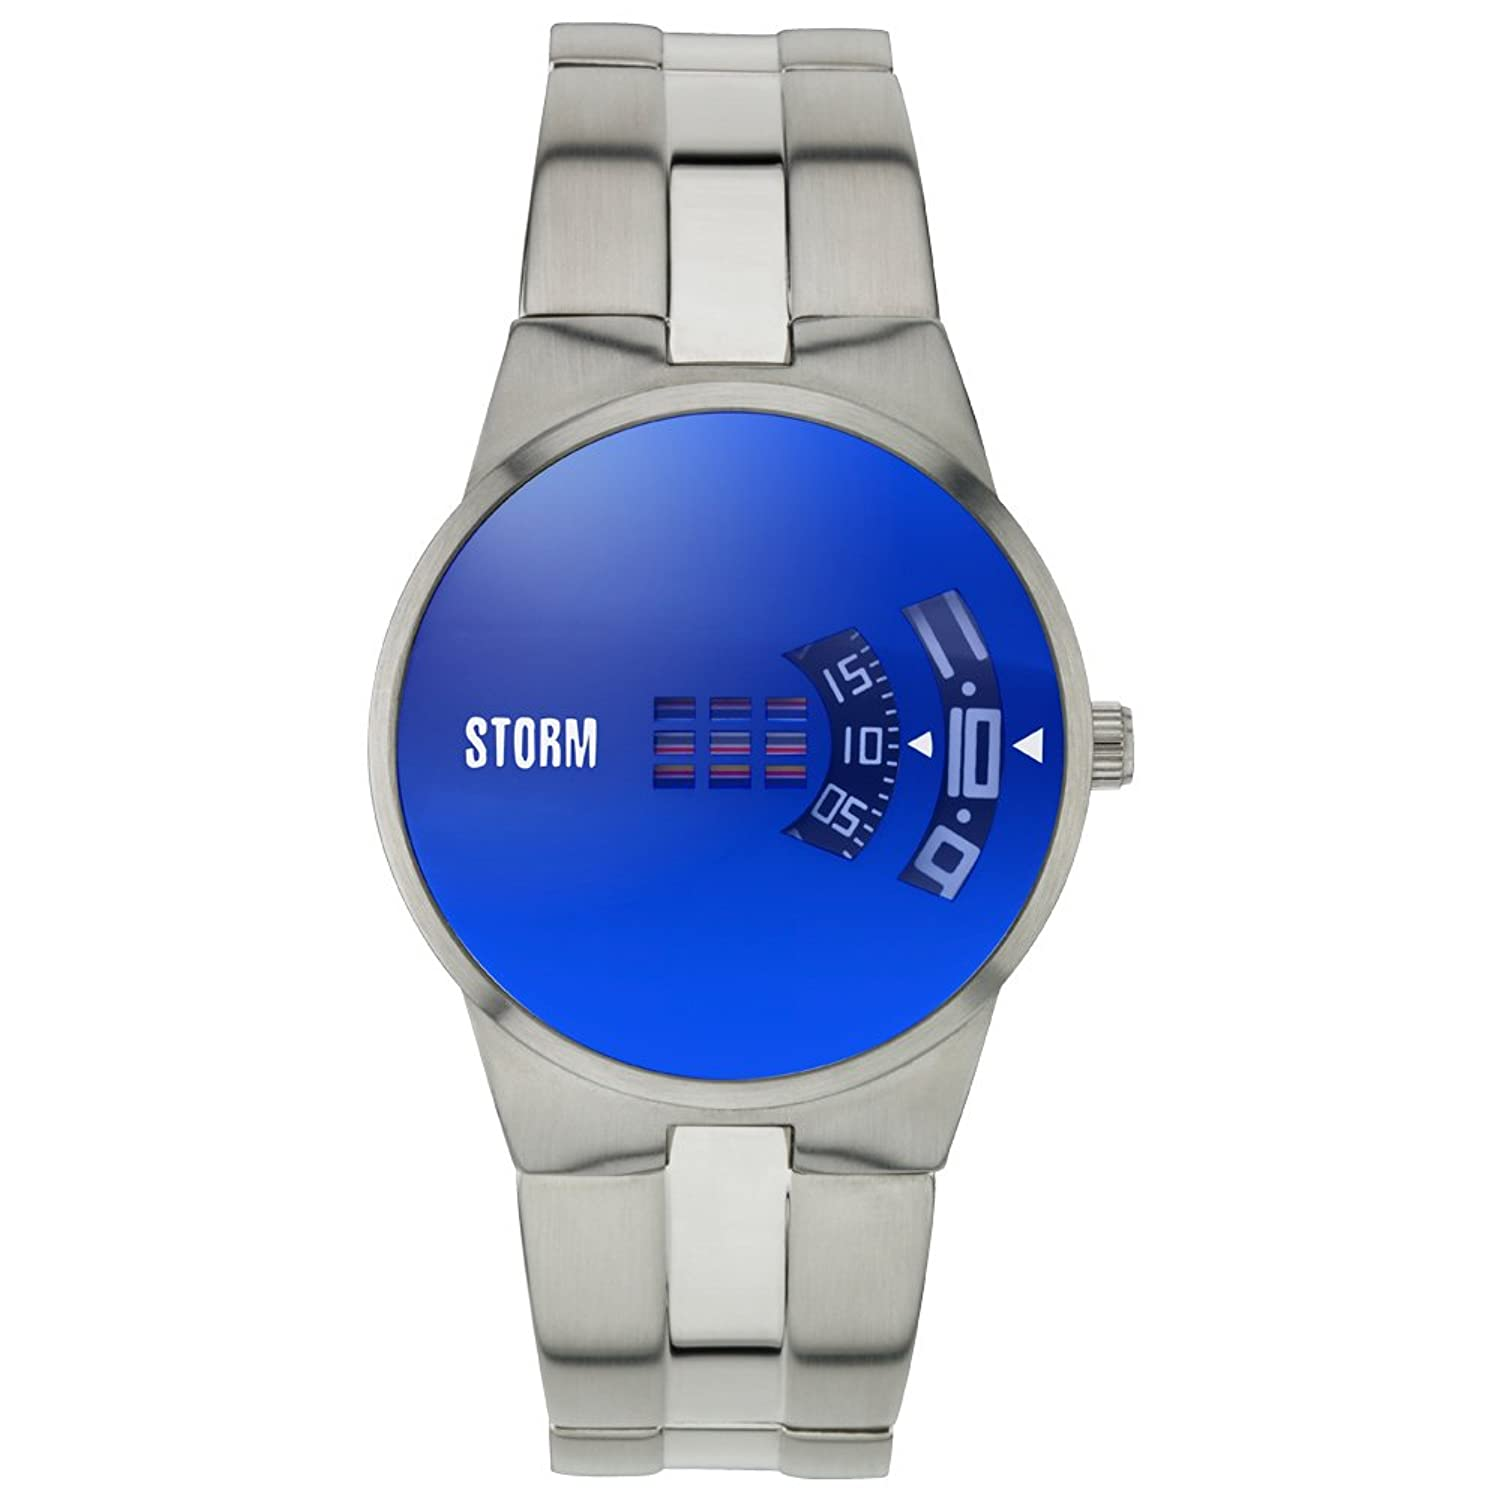 dd165138d12 Storm Men s Darth Blue Watch 47001 B  STORM  Amazon.co.uk  Watches